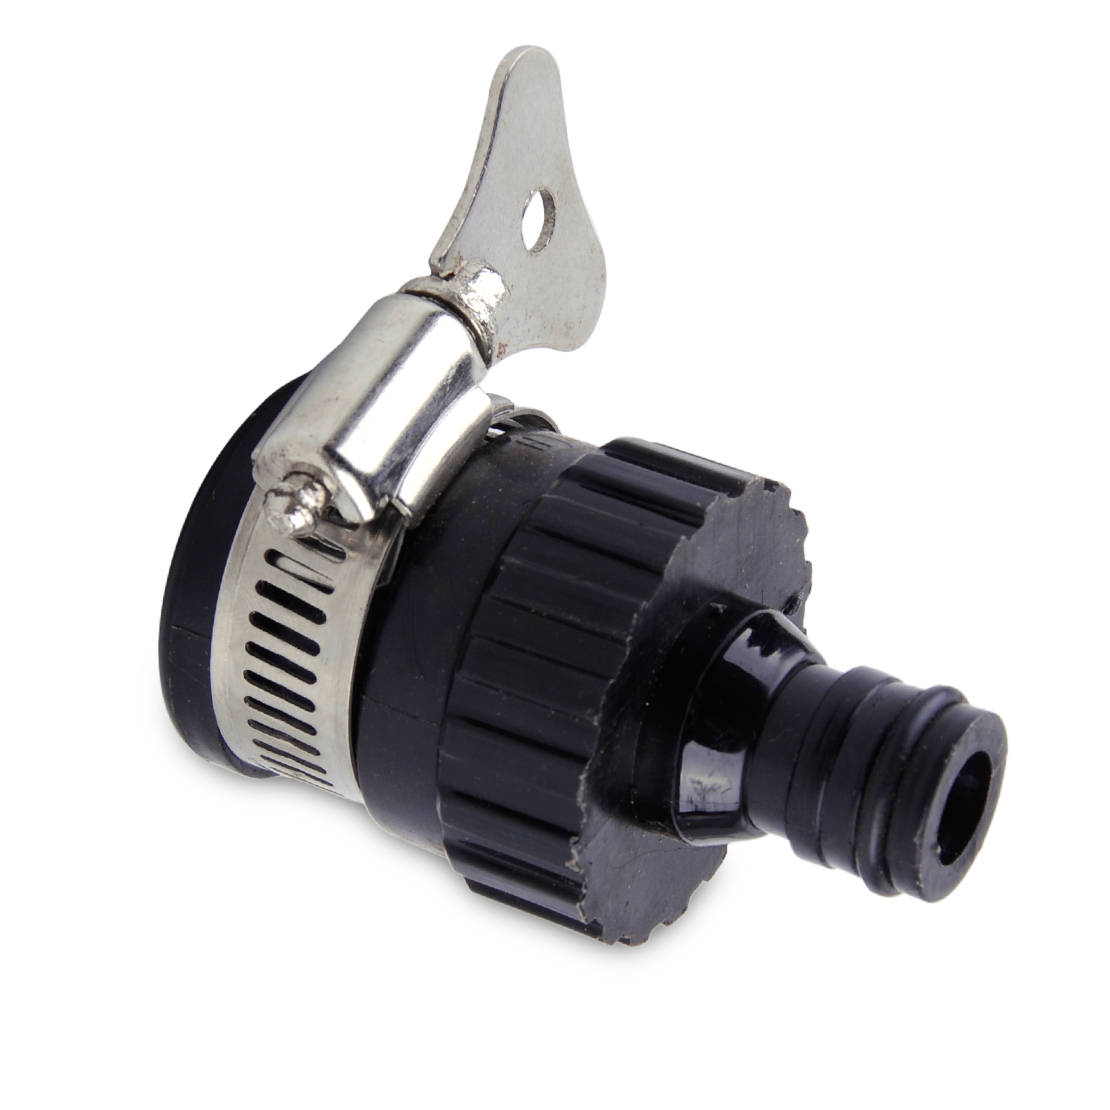 Garden-Hose-Pipe-Tap-Connector-Mixer-Kitchen-Faucet-Adapter-Fit-For-1-4-2cm-Taps